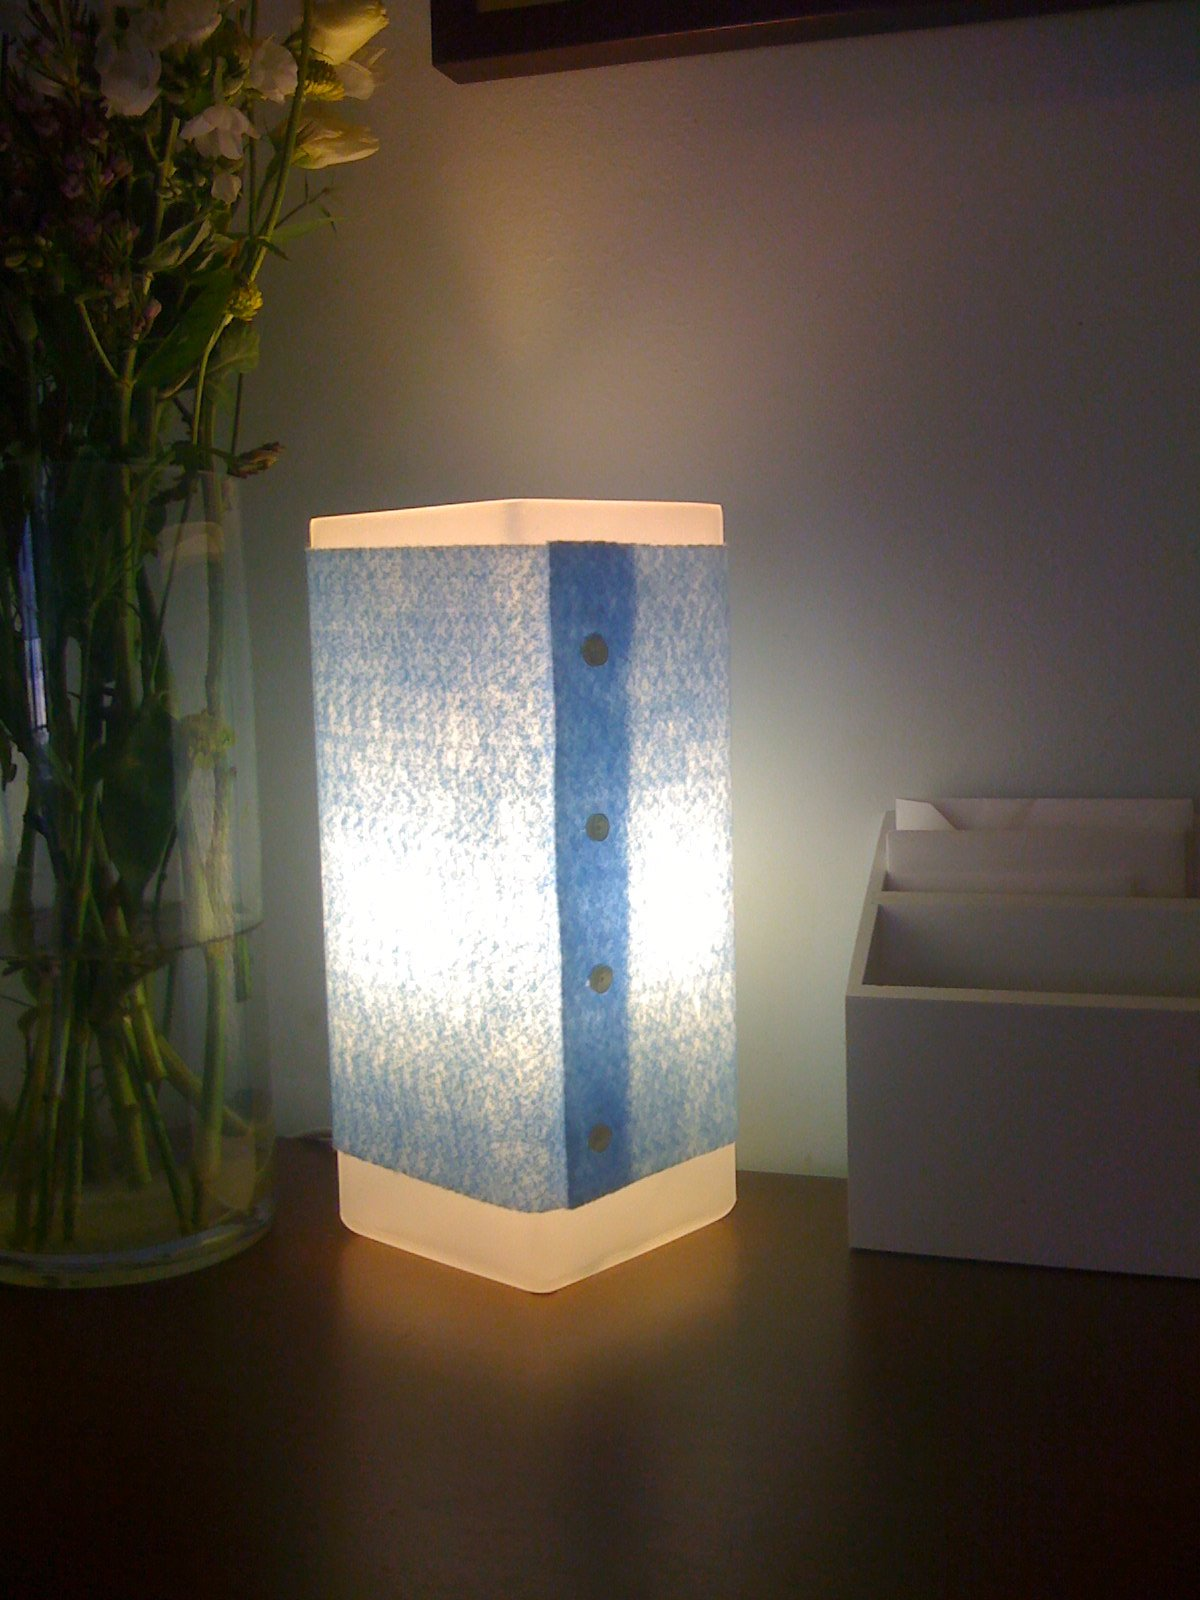 Bon See Other Grono Lamp Hacks: U2013 Great Grono Lamp Hacks U2013 Grono As Bathroom  Lights U2013 Good Looking Gronos U2013 Palm Leaf Textured Grono Lamp Shade